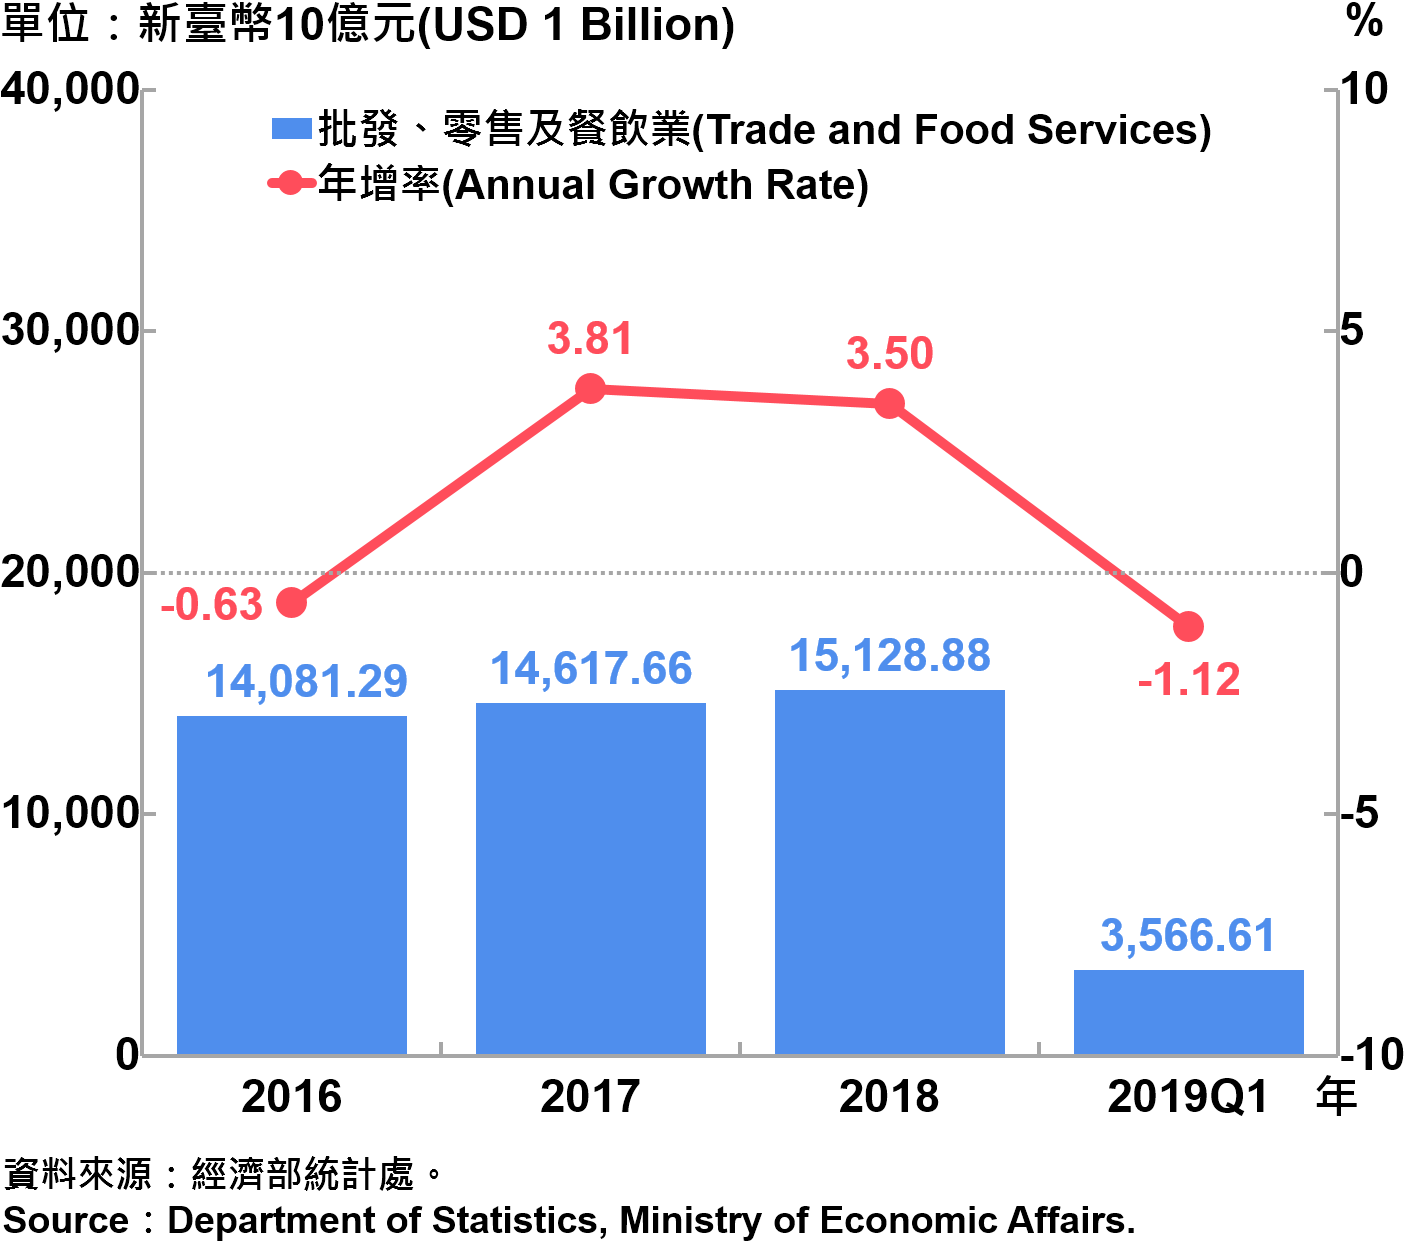 批發、零售及餐飲業營業額統計 Sales and Annual Growth Rate of Trade and Food Services